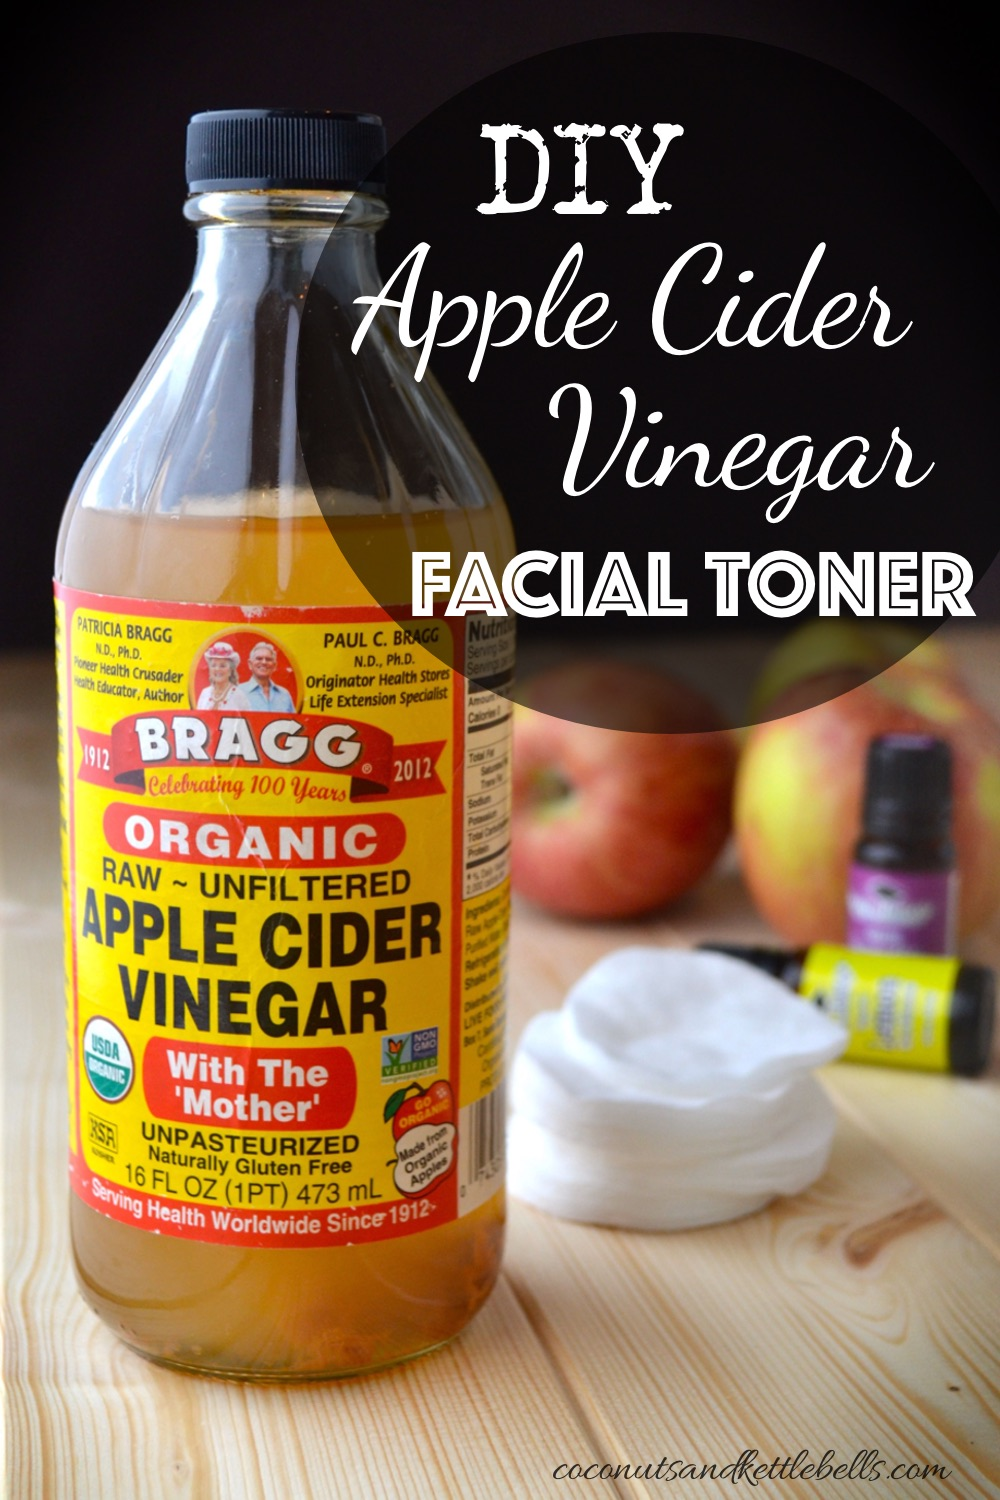 DIY Apple Cider Vinegar Toner Recipe - Coconuts & Kettlebells